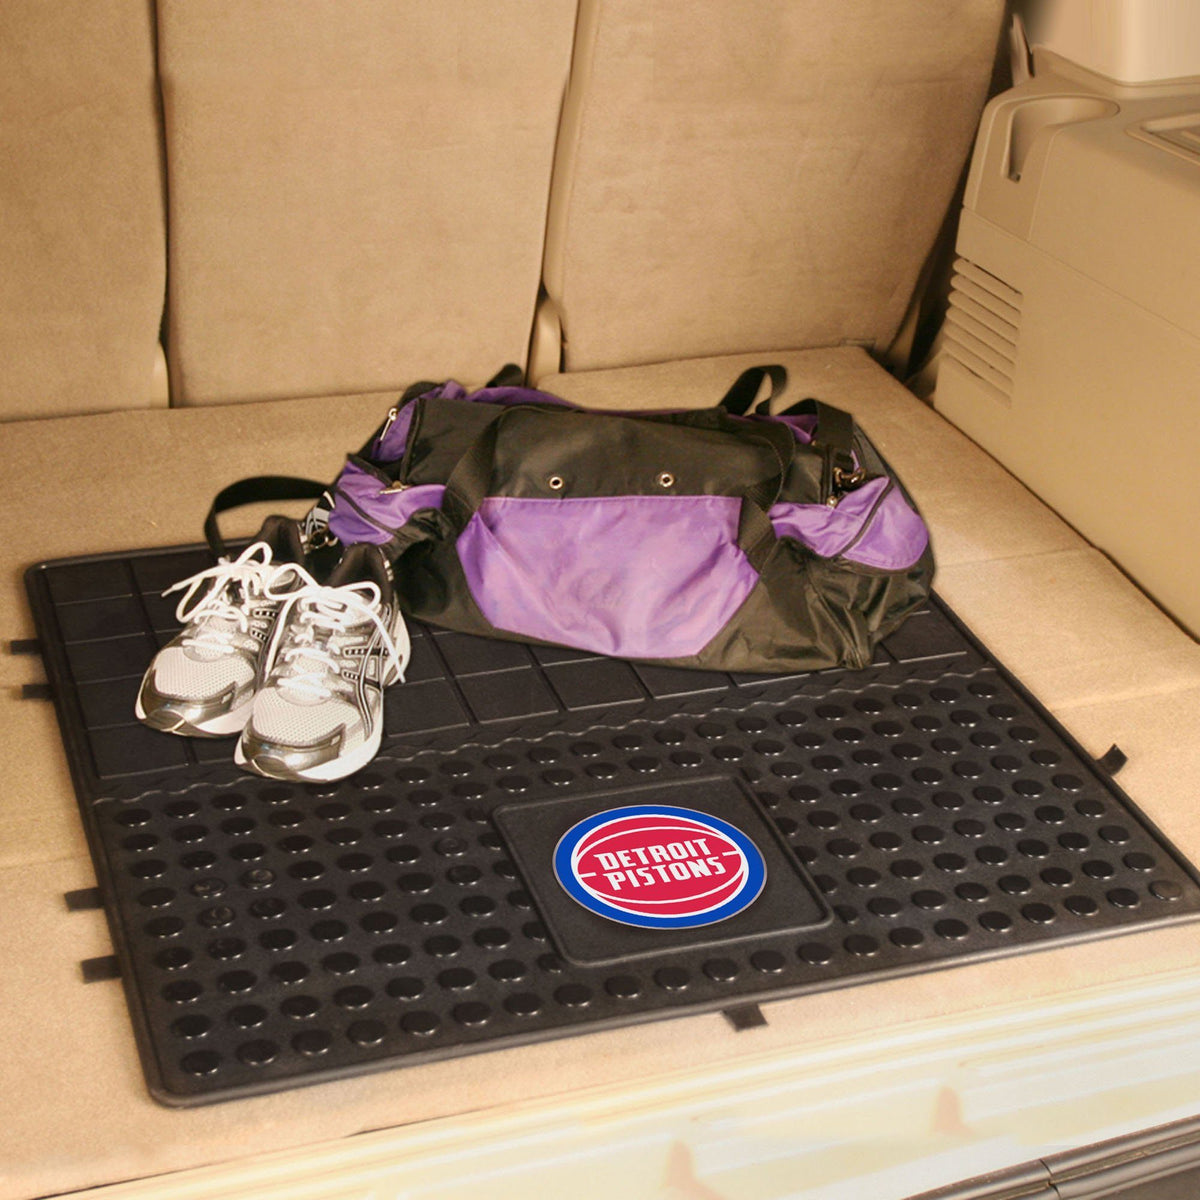 NBA - Heavy Duty Vinyl Cargo Mat NBA Mats, Trunk Mats, Heavy Duty Vinyl Cargo Mat, NBA, Auto Fan Mats Detroit Pistons